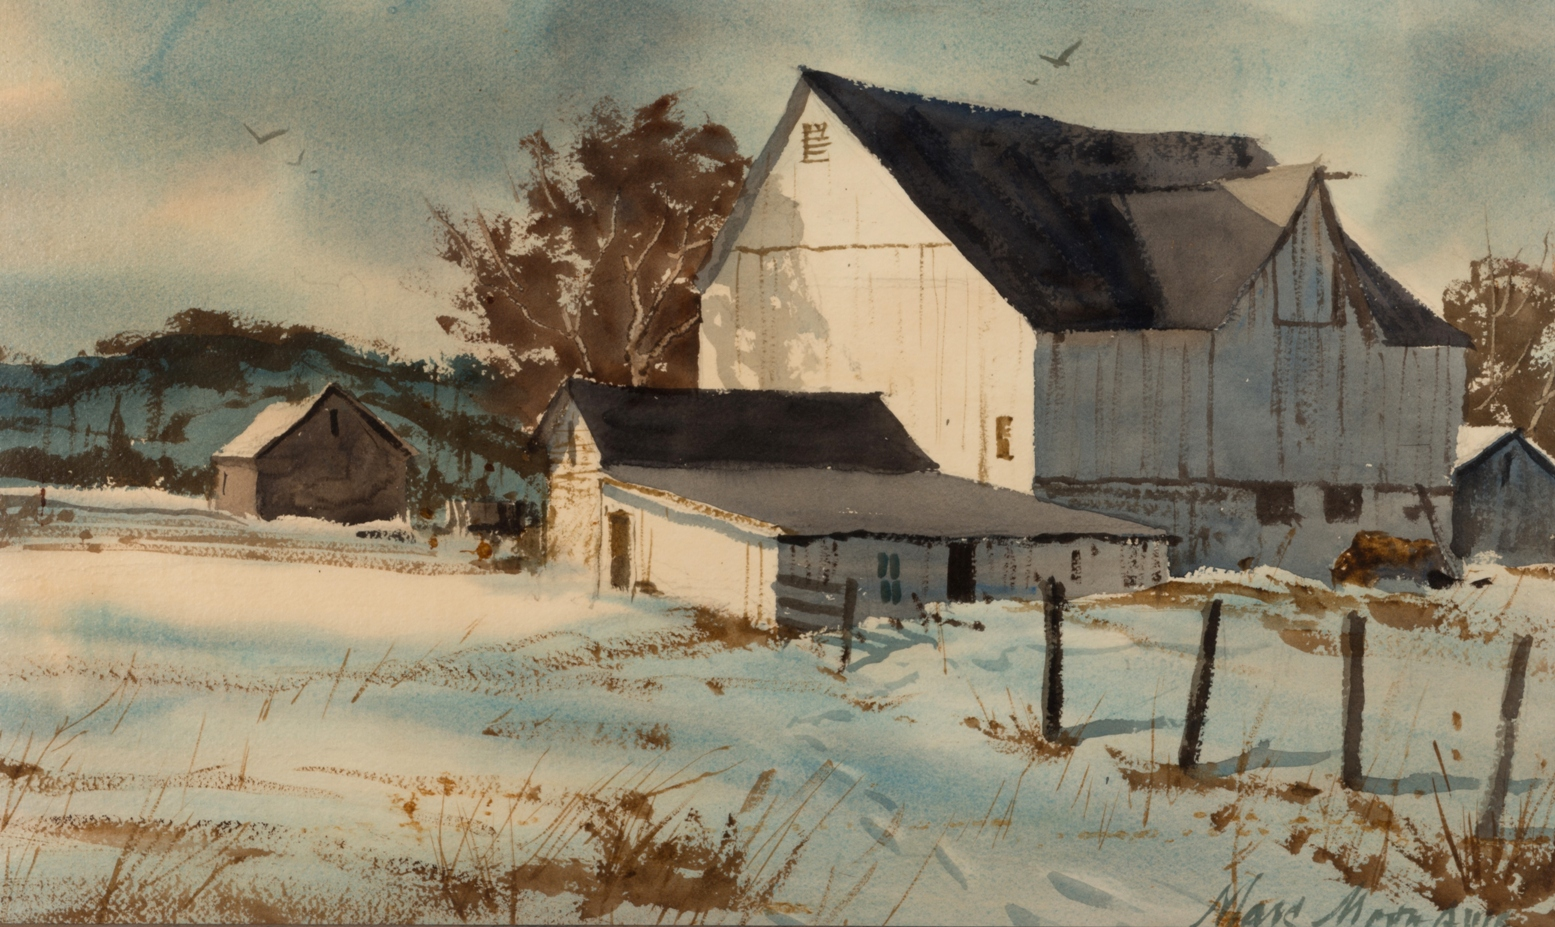 Marc Moon, Winter on 241